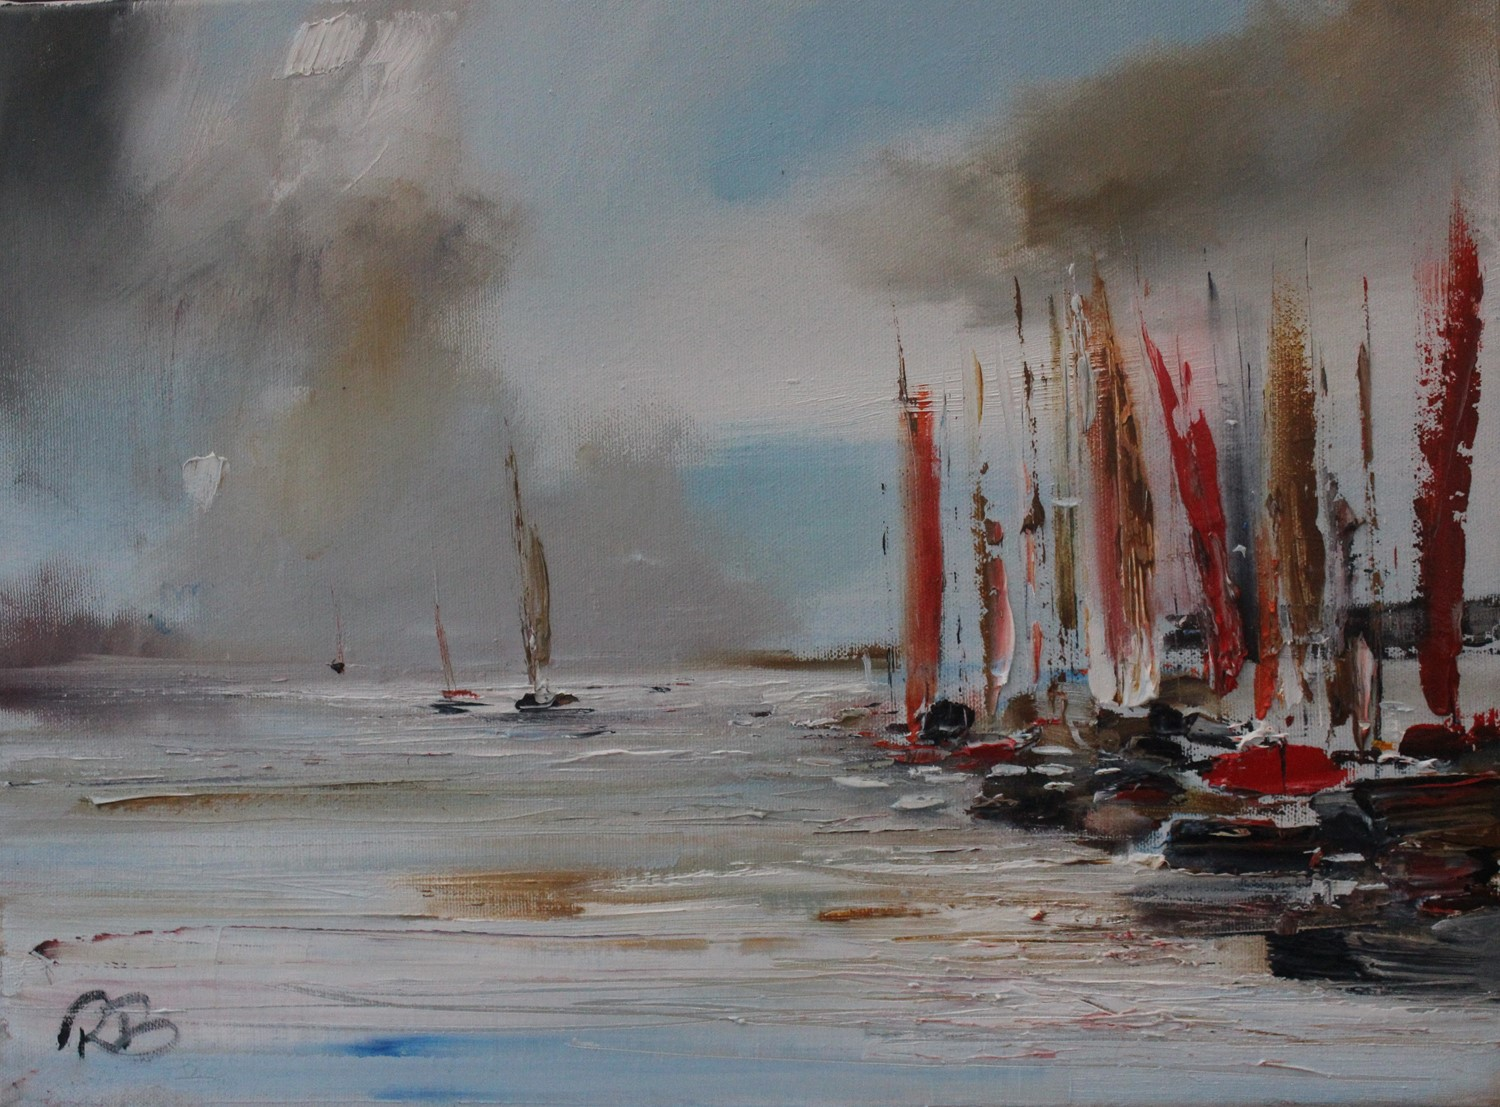 'Flurry of Sails ' by artist Rosanne Barr